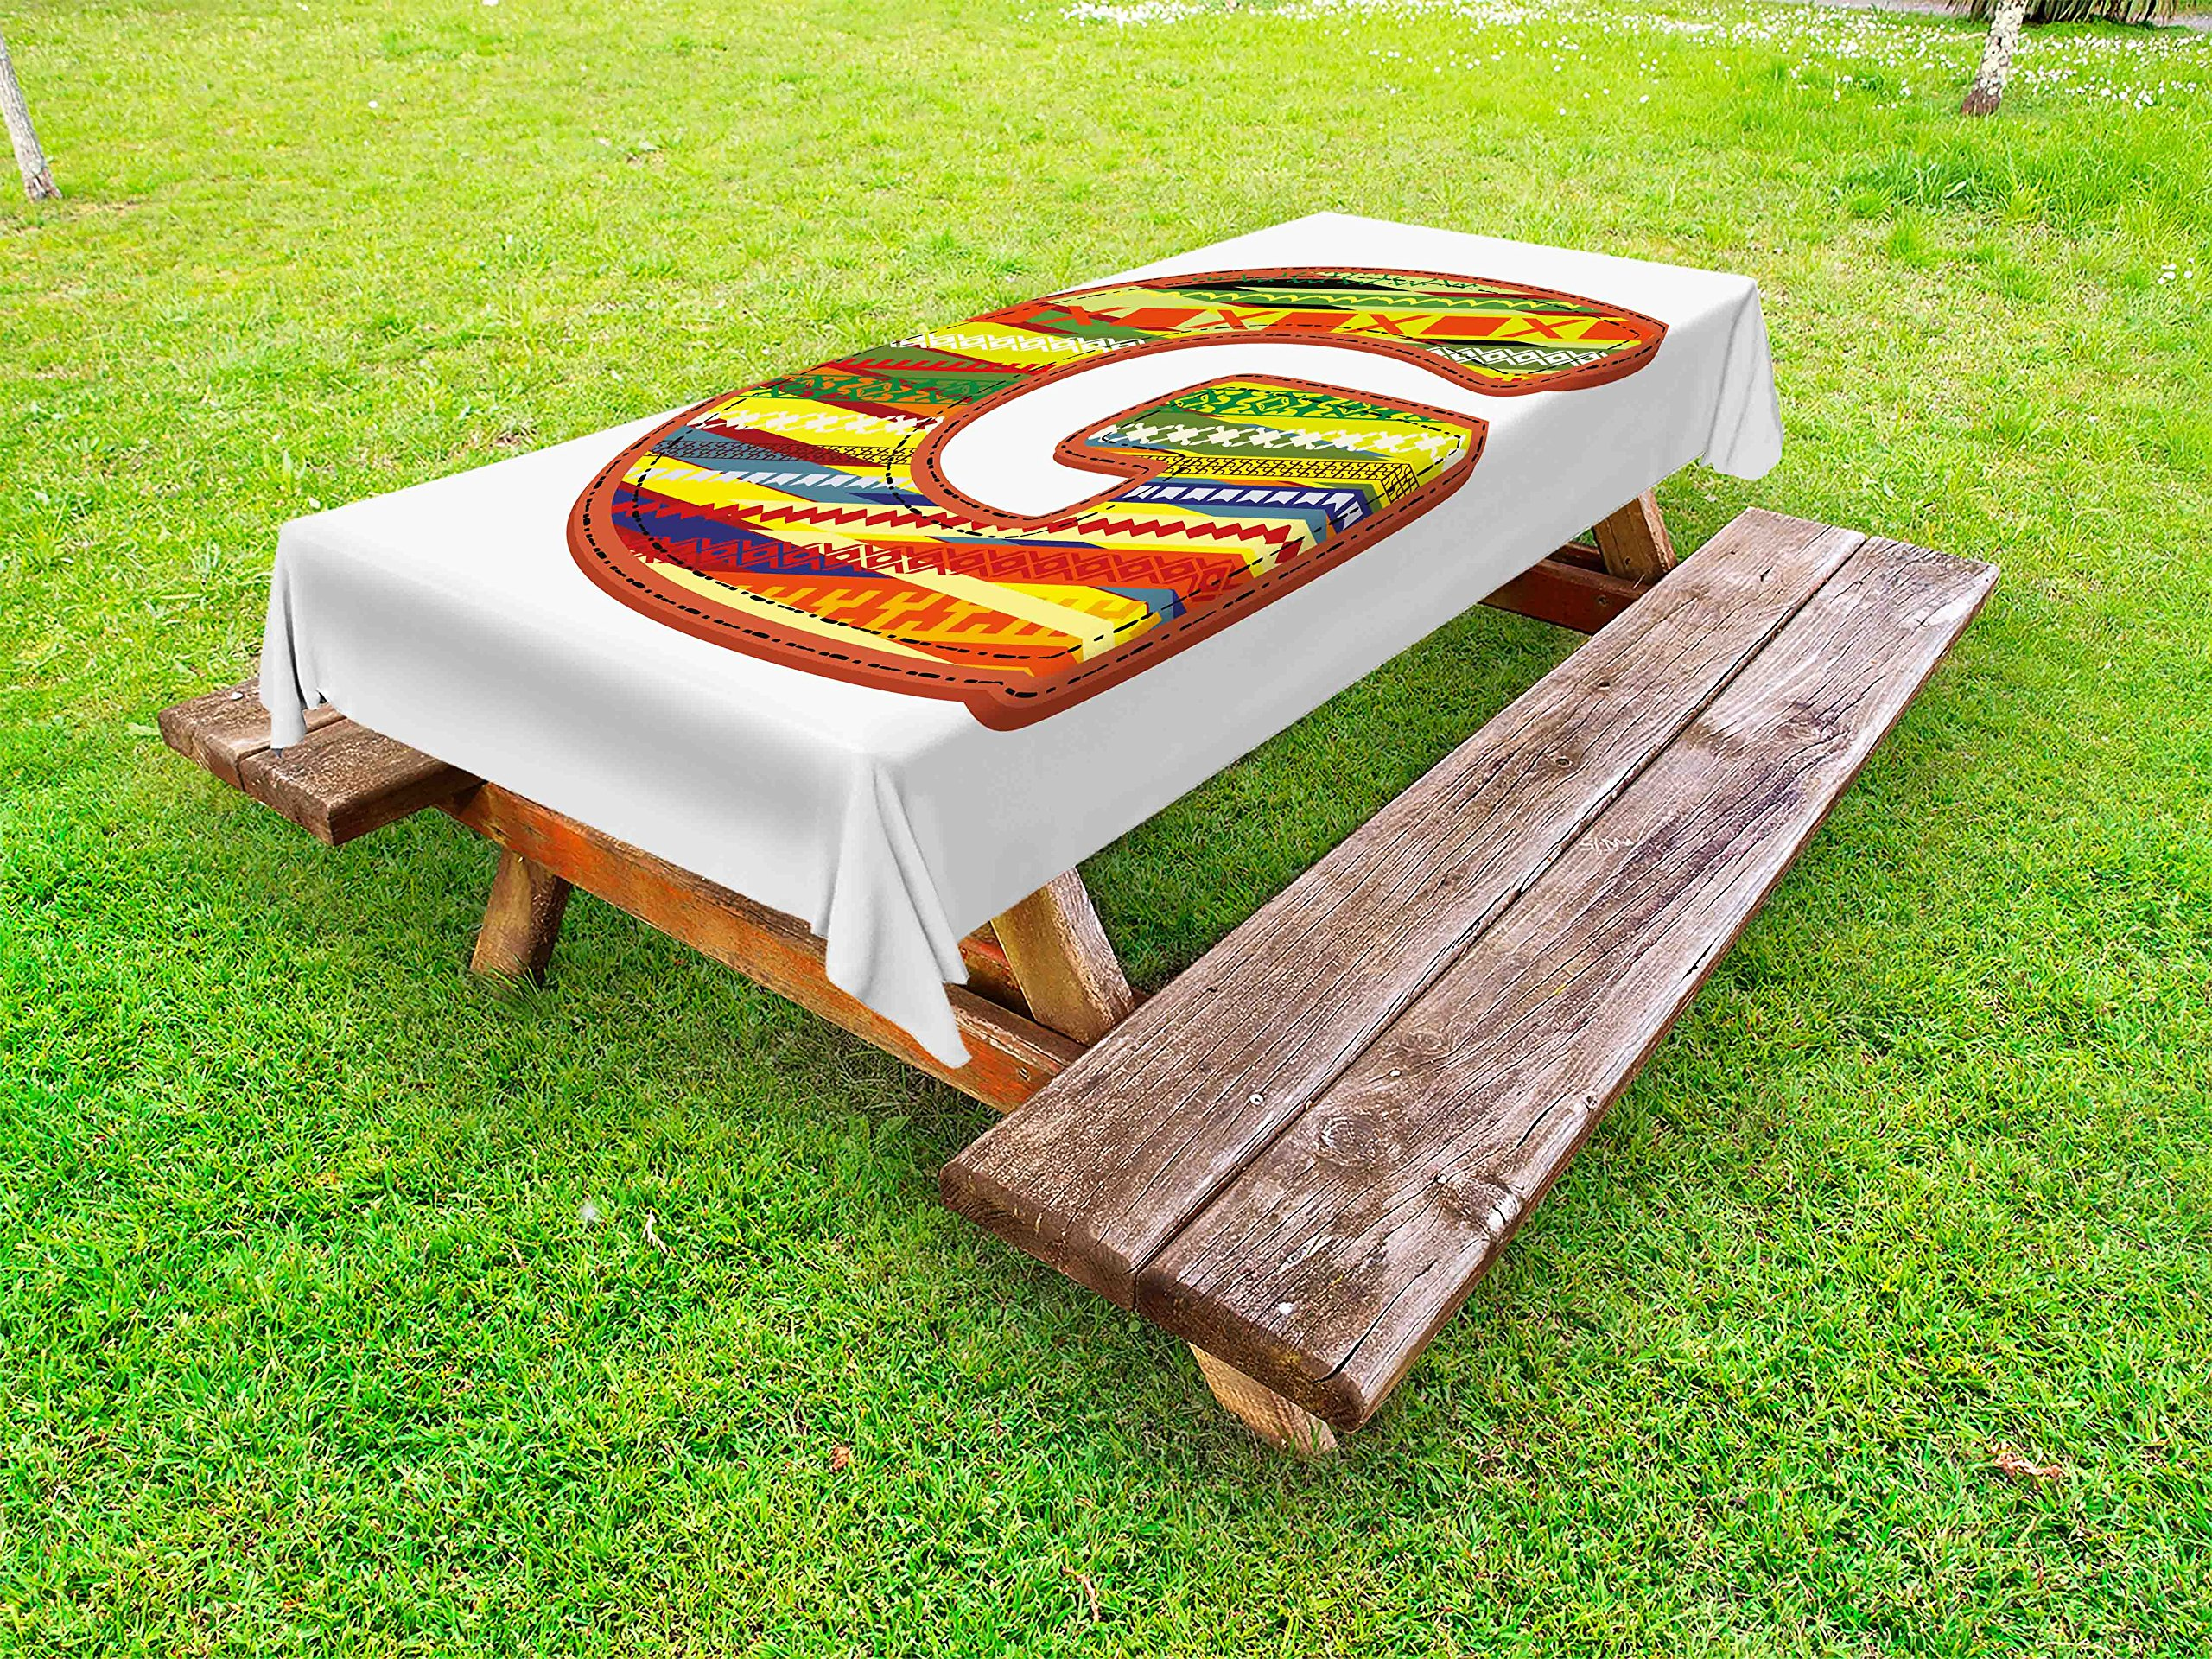 Ambesonne Letter G Outdoor Tablecloth, G Letter Character Language System Learning College Surname Red Calligraphy Design, Decorative Washable Picnic Table Cloth, 58 X 120 inches, Multicolor